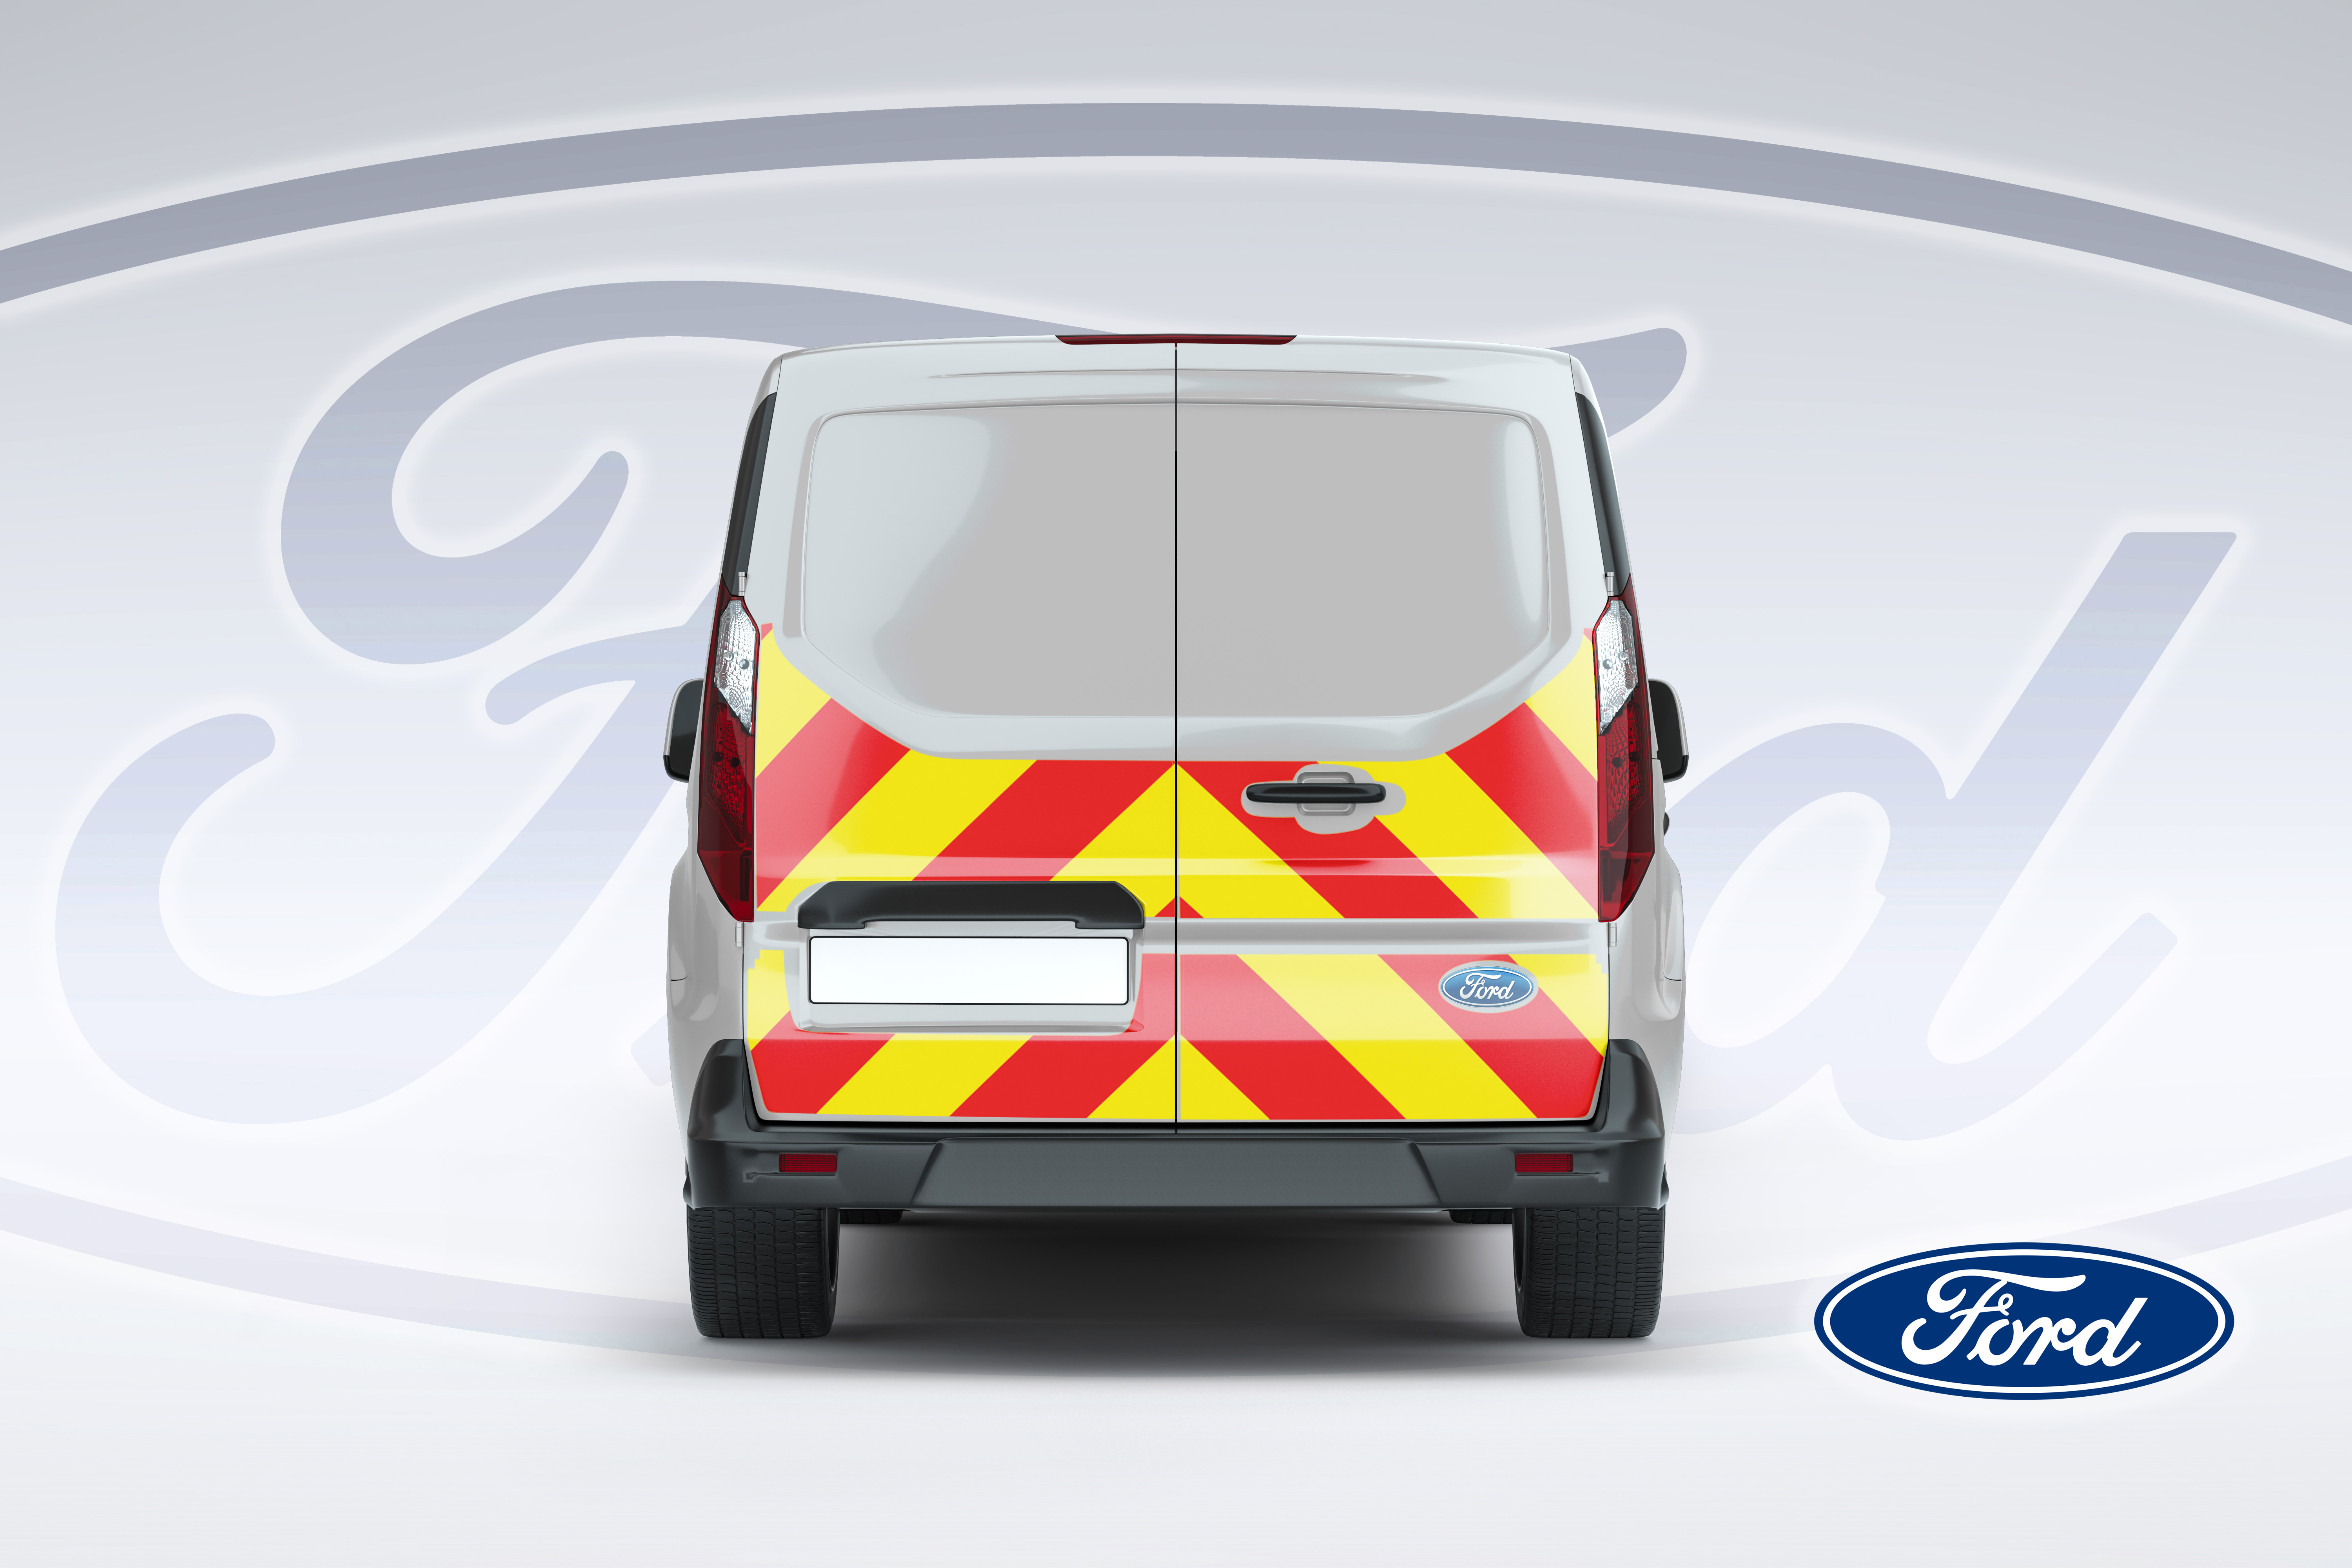 Pic showing reverse of Ford Connect van with IM illuminated chevrons fitted